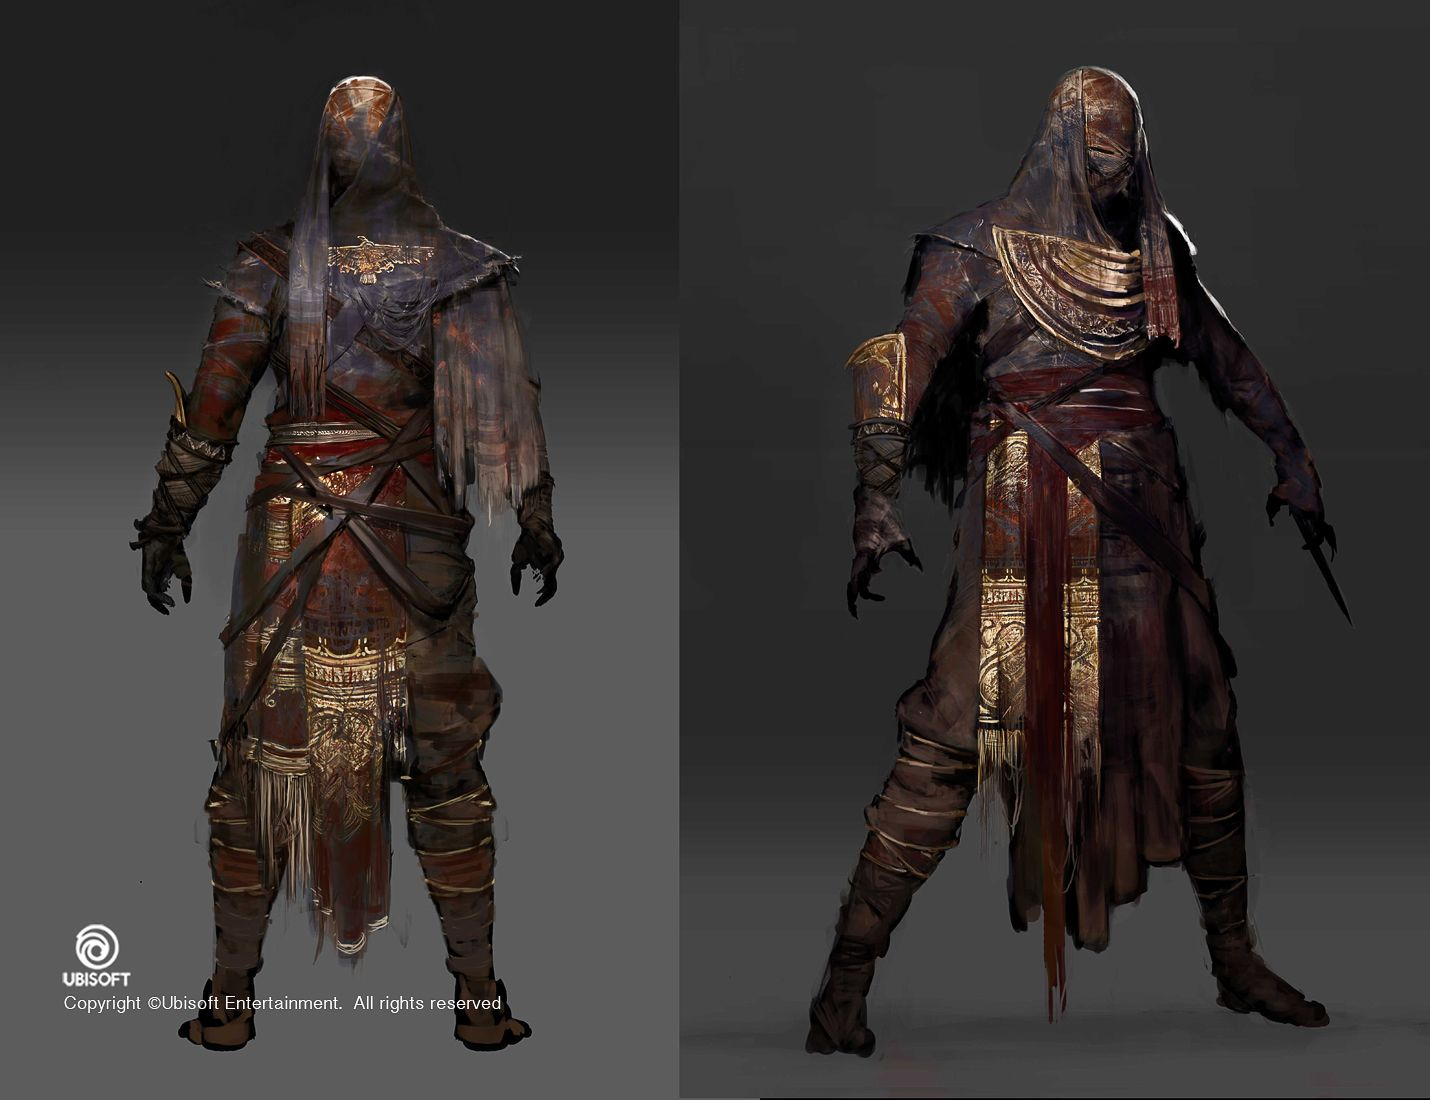 Assassin S Creed Origins Character Concept Art By Jeff Simpson Concept Art Characters Assassins Creed Origins Assassins Creed Artwork